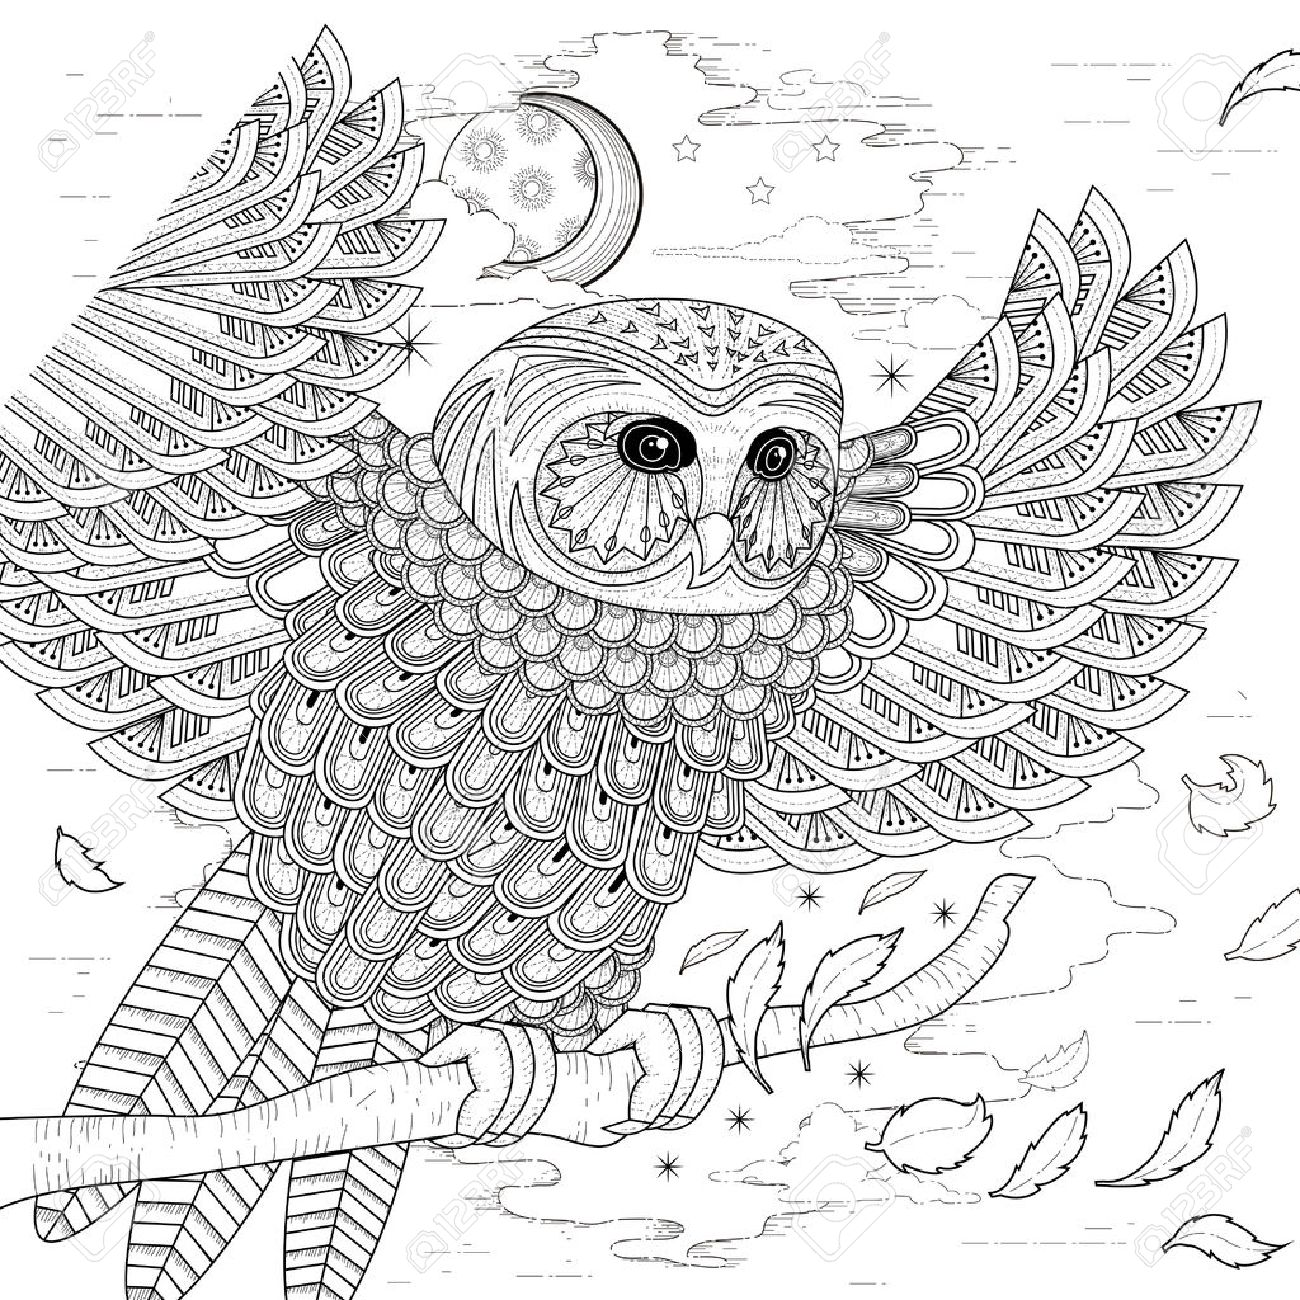 Lovely Owl Coloring Page Design In Exquisite Style Stock Vector